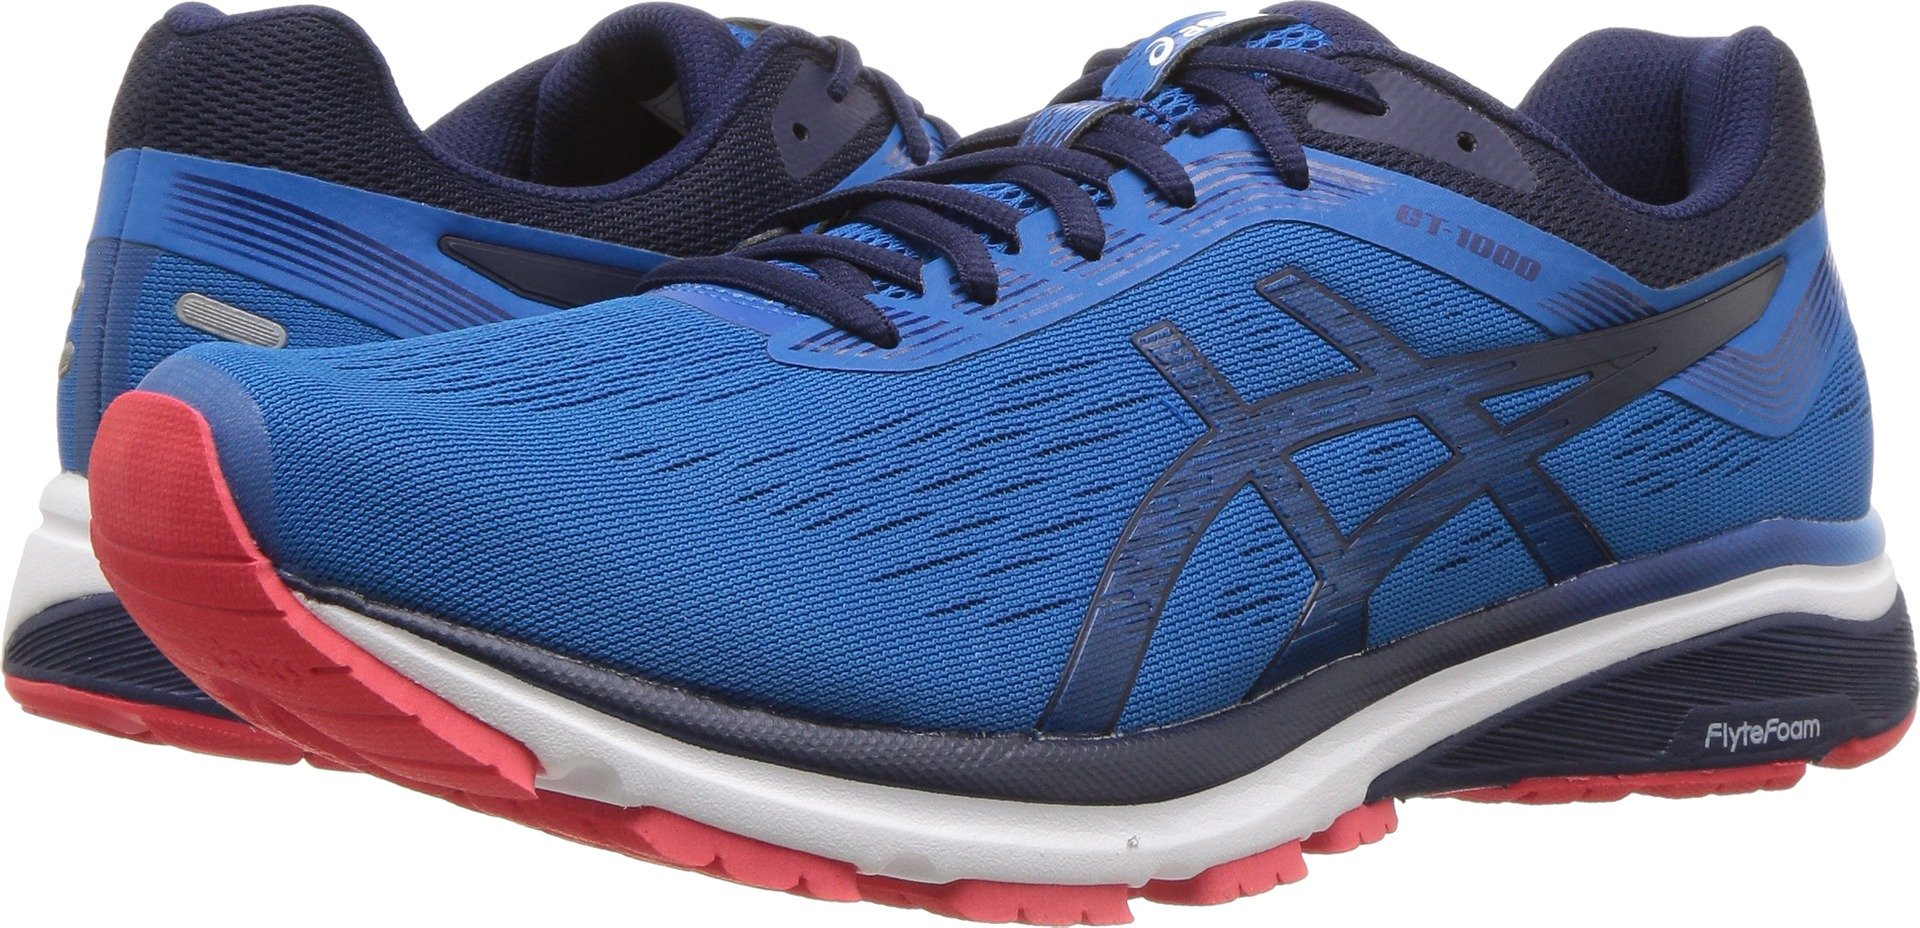 ASICS Mens GT-1000 7 Running Shoe, Race Blue/Peacoat, Size 12.5